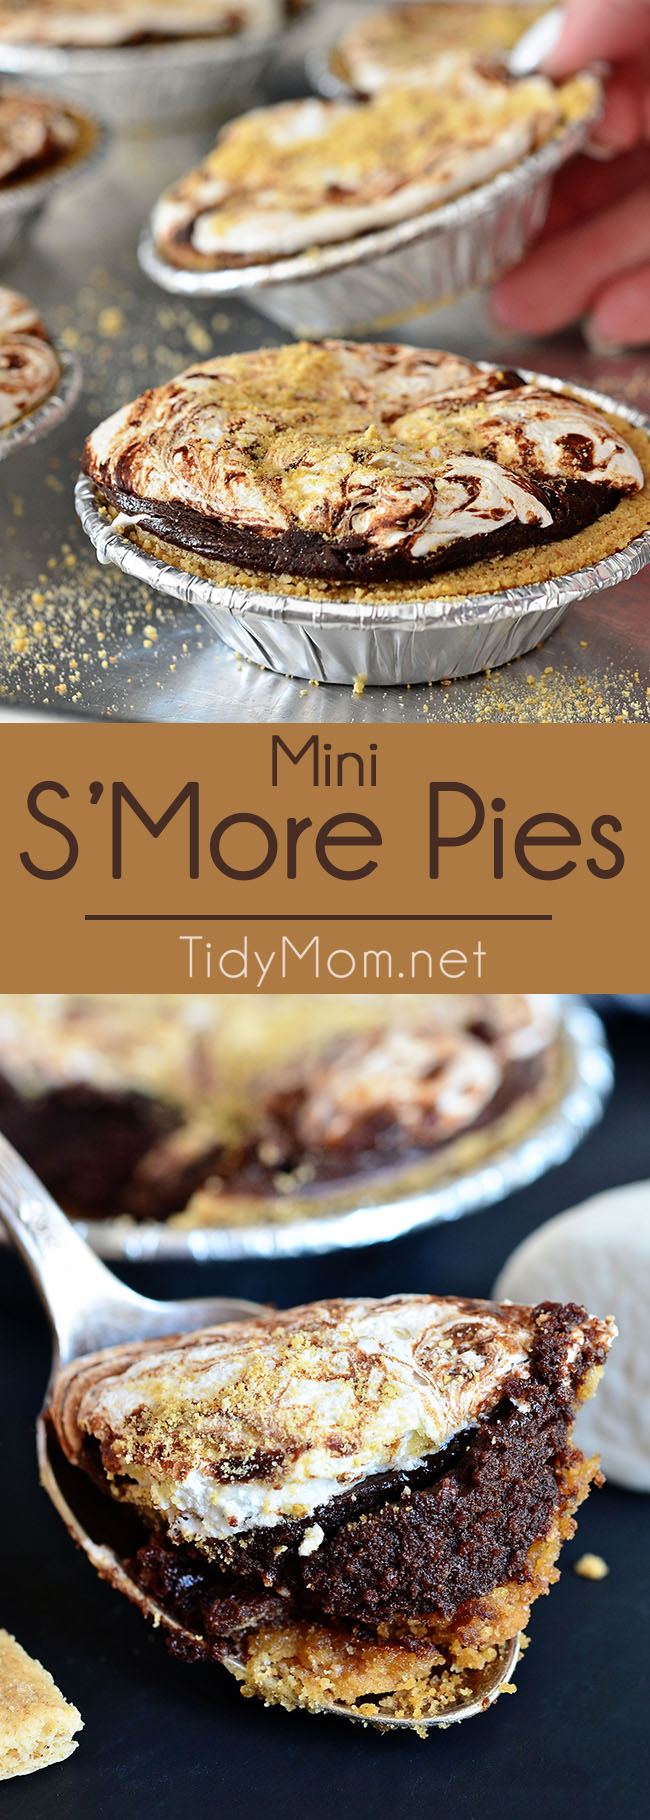 Mini S'more Pies are the perfect dessert for entertaining or snacking. It's one of those 'wow-your-guests but almost no effort' recipes that will have everyone drooling. S'more lovers can get this pie recipe at TidyMom.net